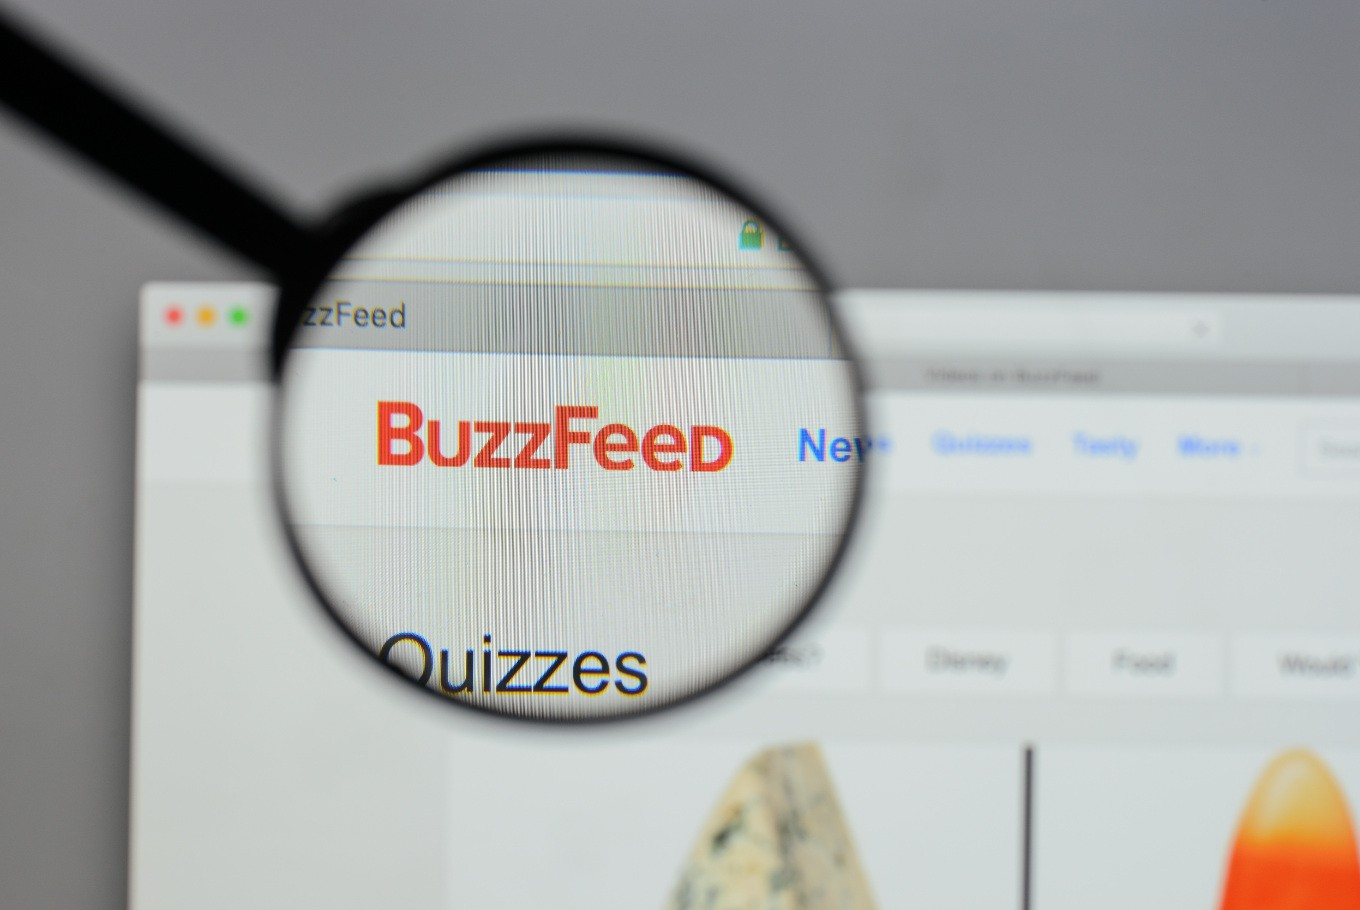 BuzzFeed acquires HuffPost in tie-up of digital media rivals